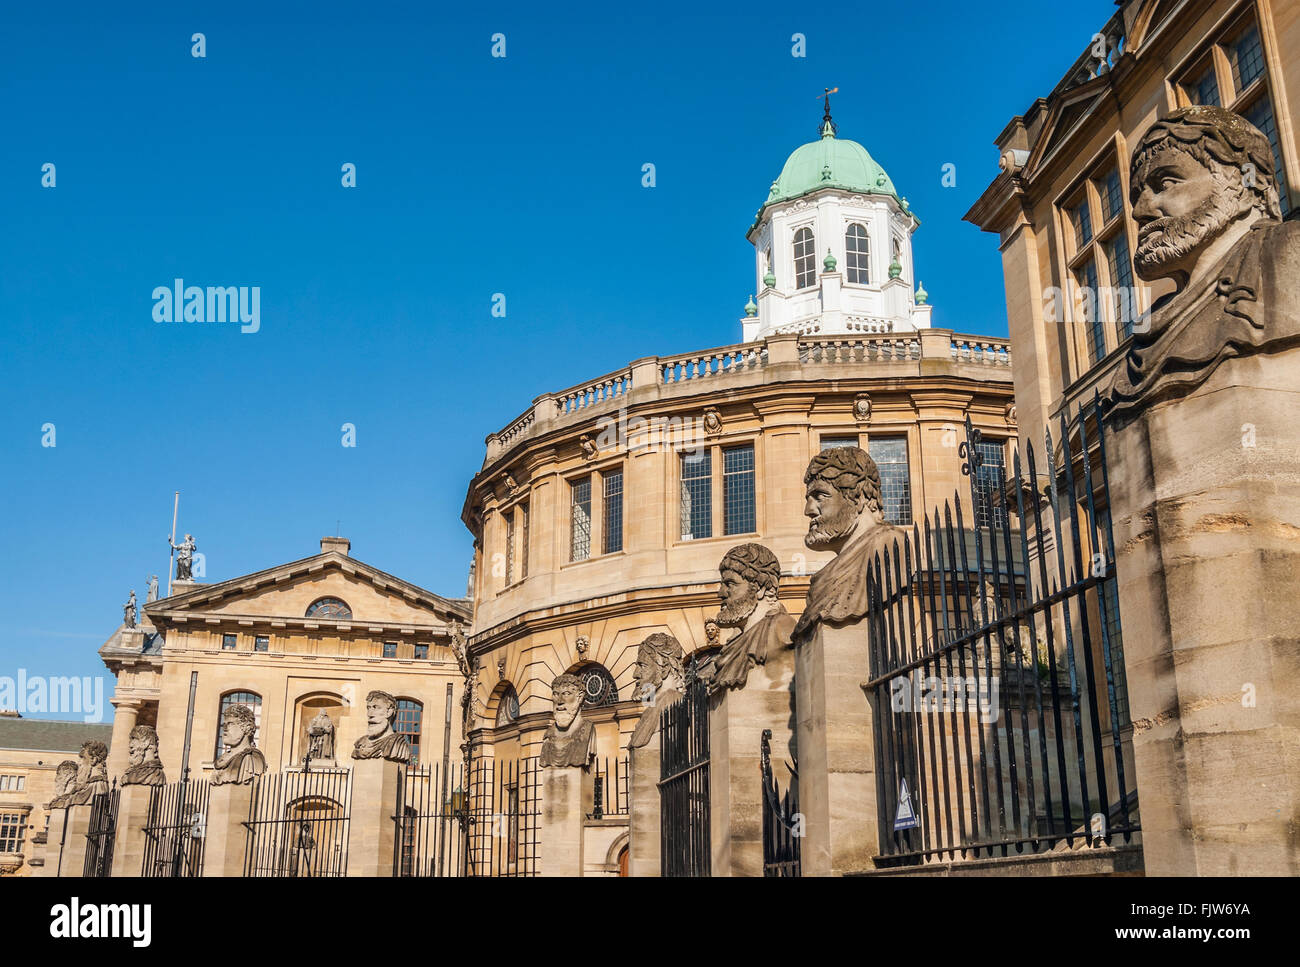 Sheldonian Theatre built from 1664 to 1668 for the University of Oxford, Oxfordshire, England Stock Photo